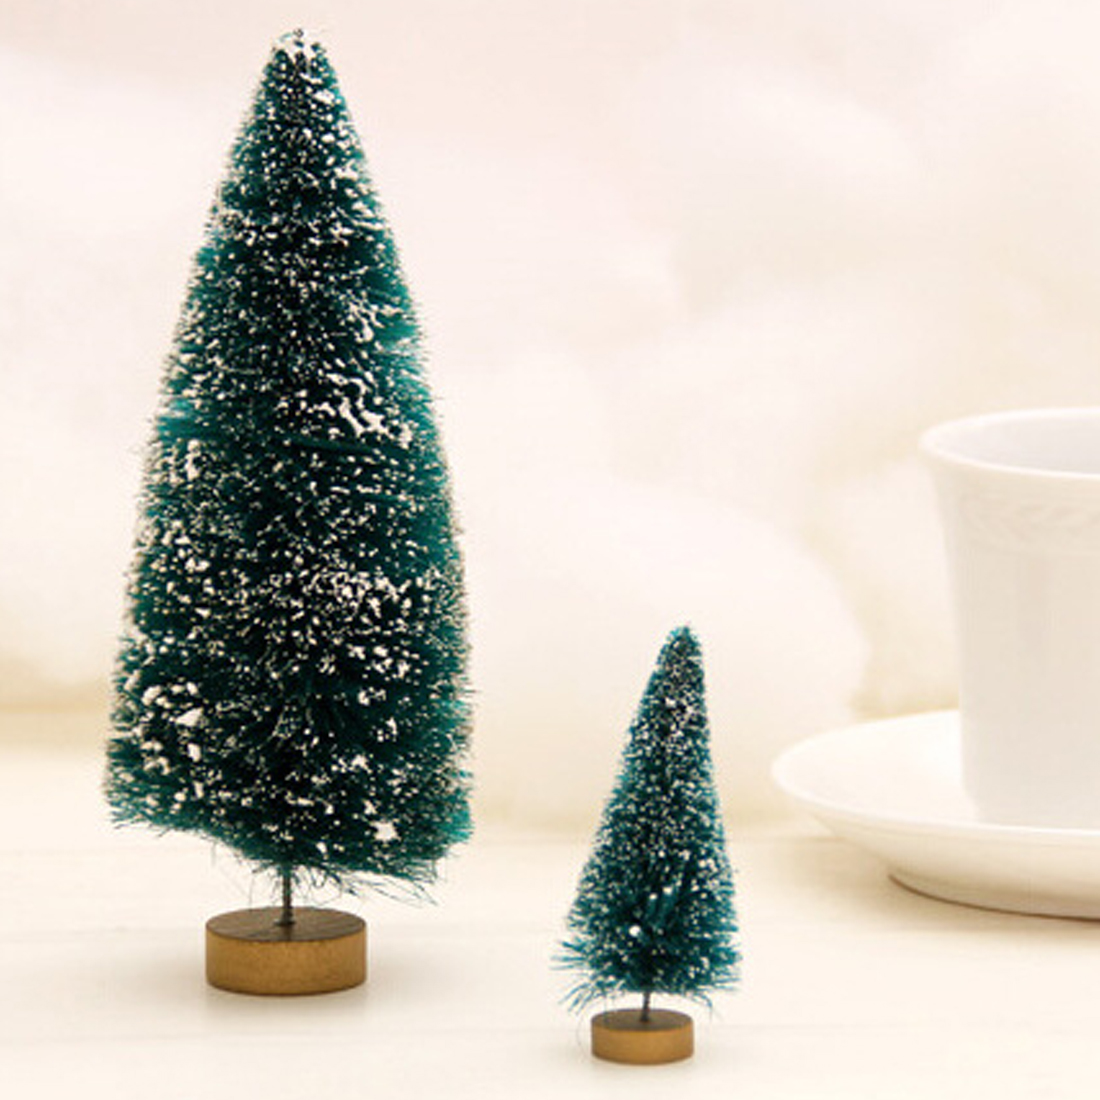 Best Sale Christmas Tree A Small Pine Tree Placed In The Desktop Mini Christmas Tree Decoration For Home Xmas